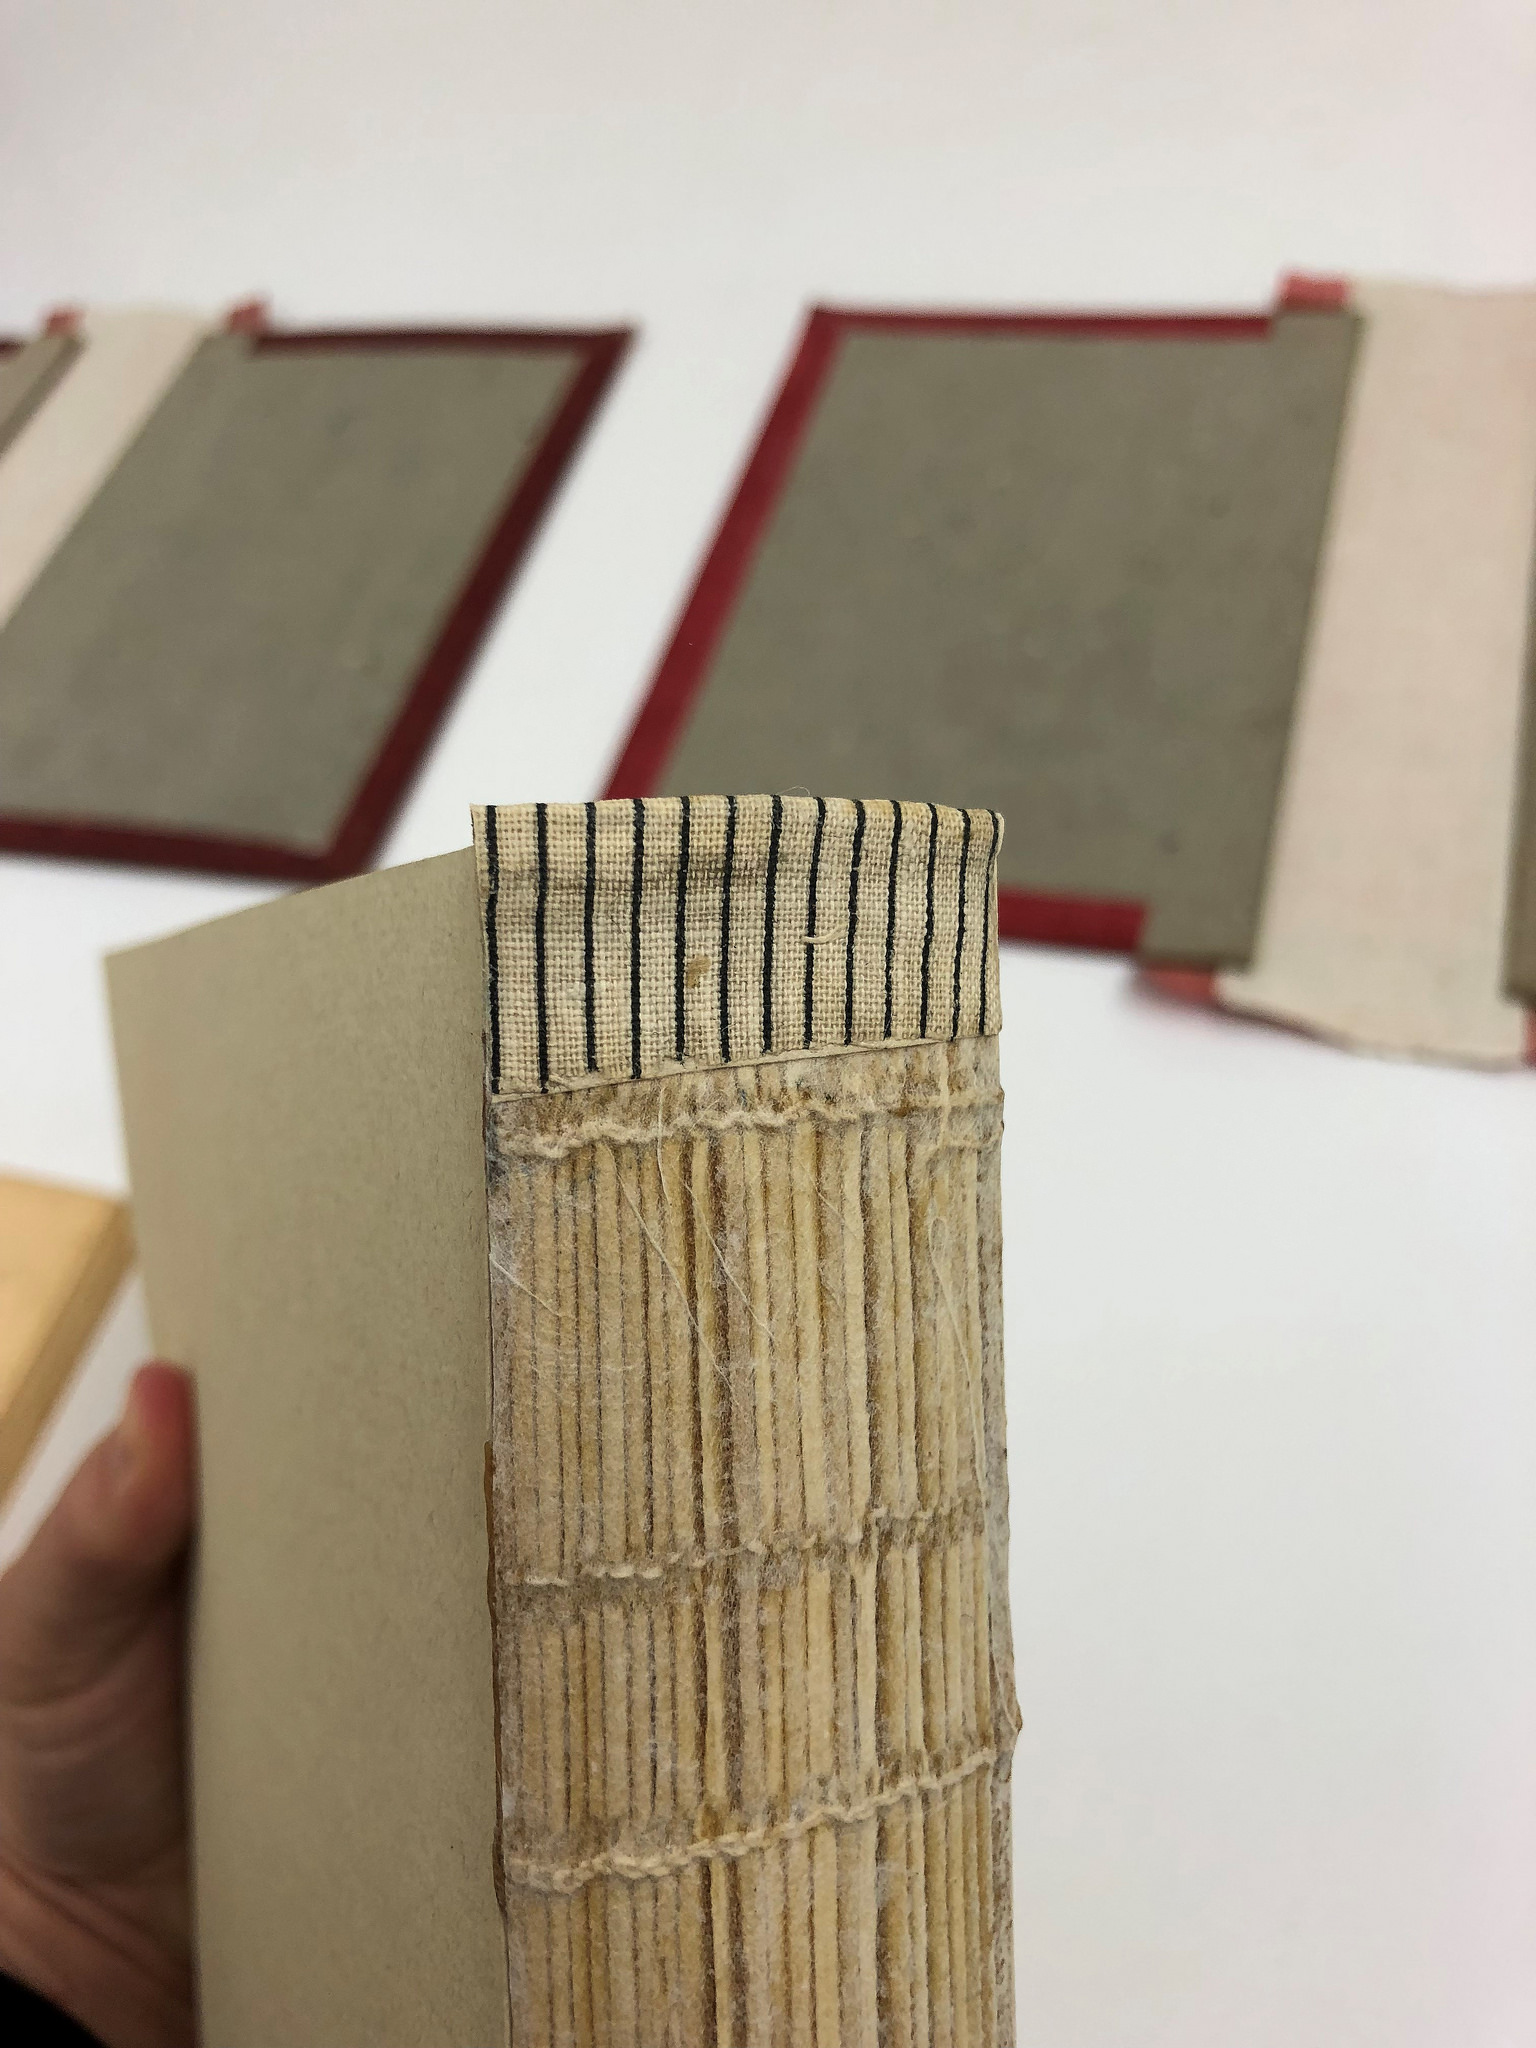 During Treatment - Reinforcing the textblock with linings and new hinging material